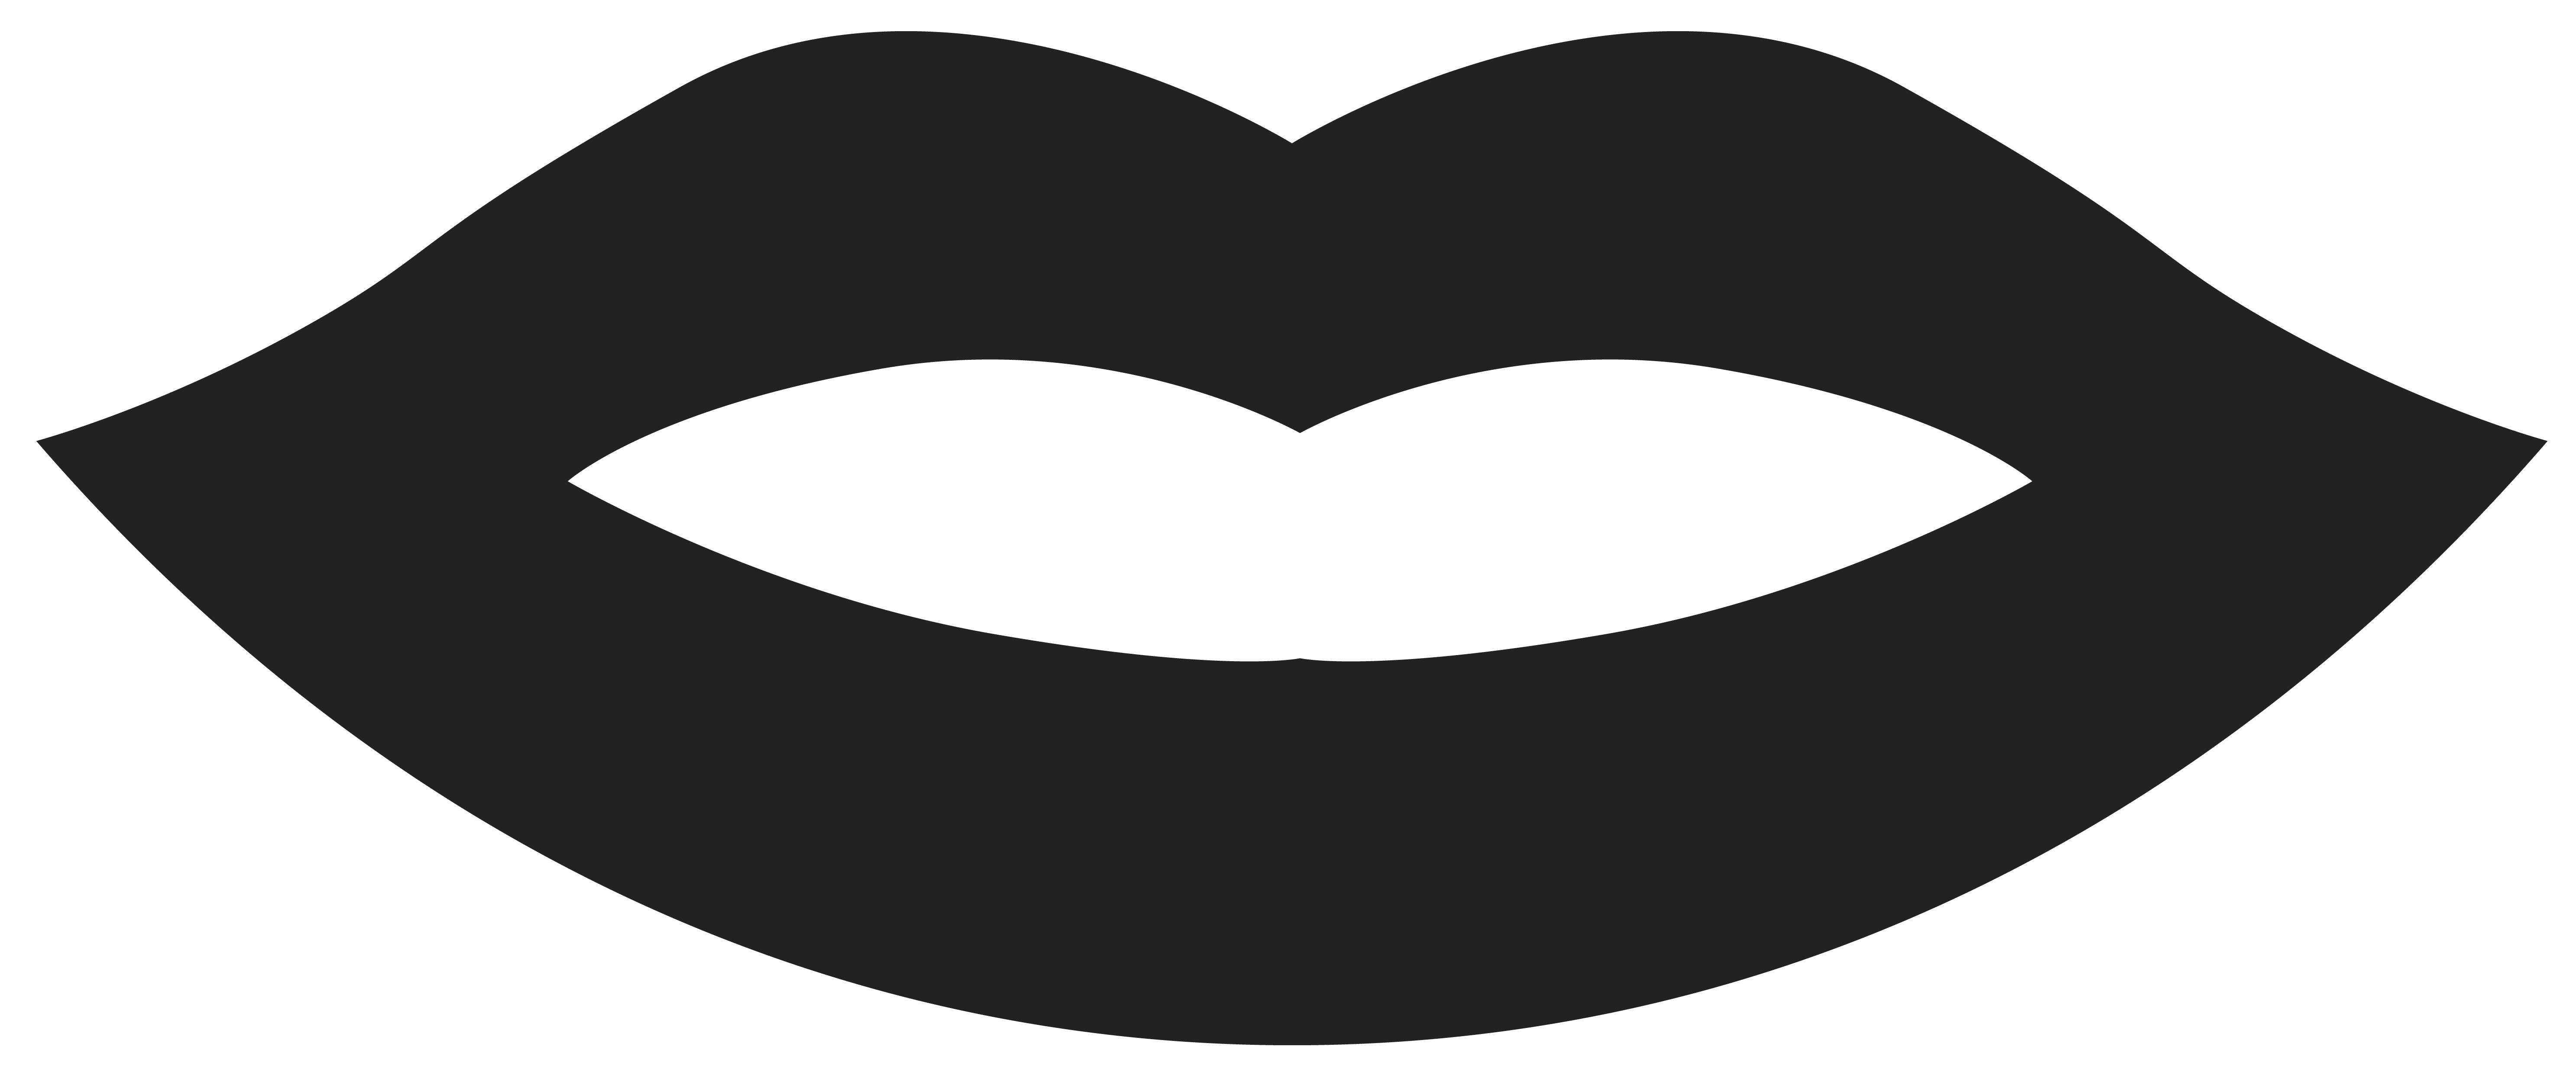 Movember Lips PNG Clipart Image.